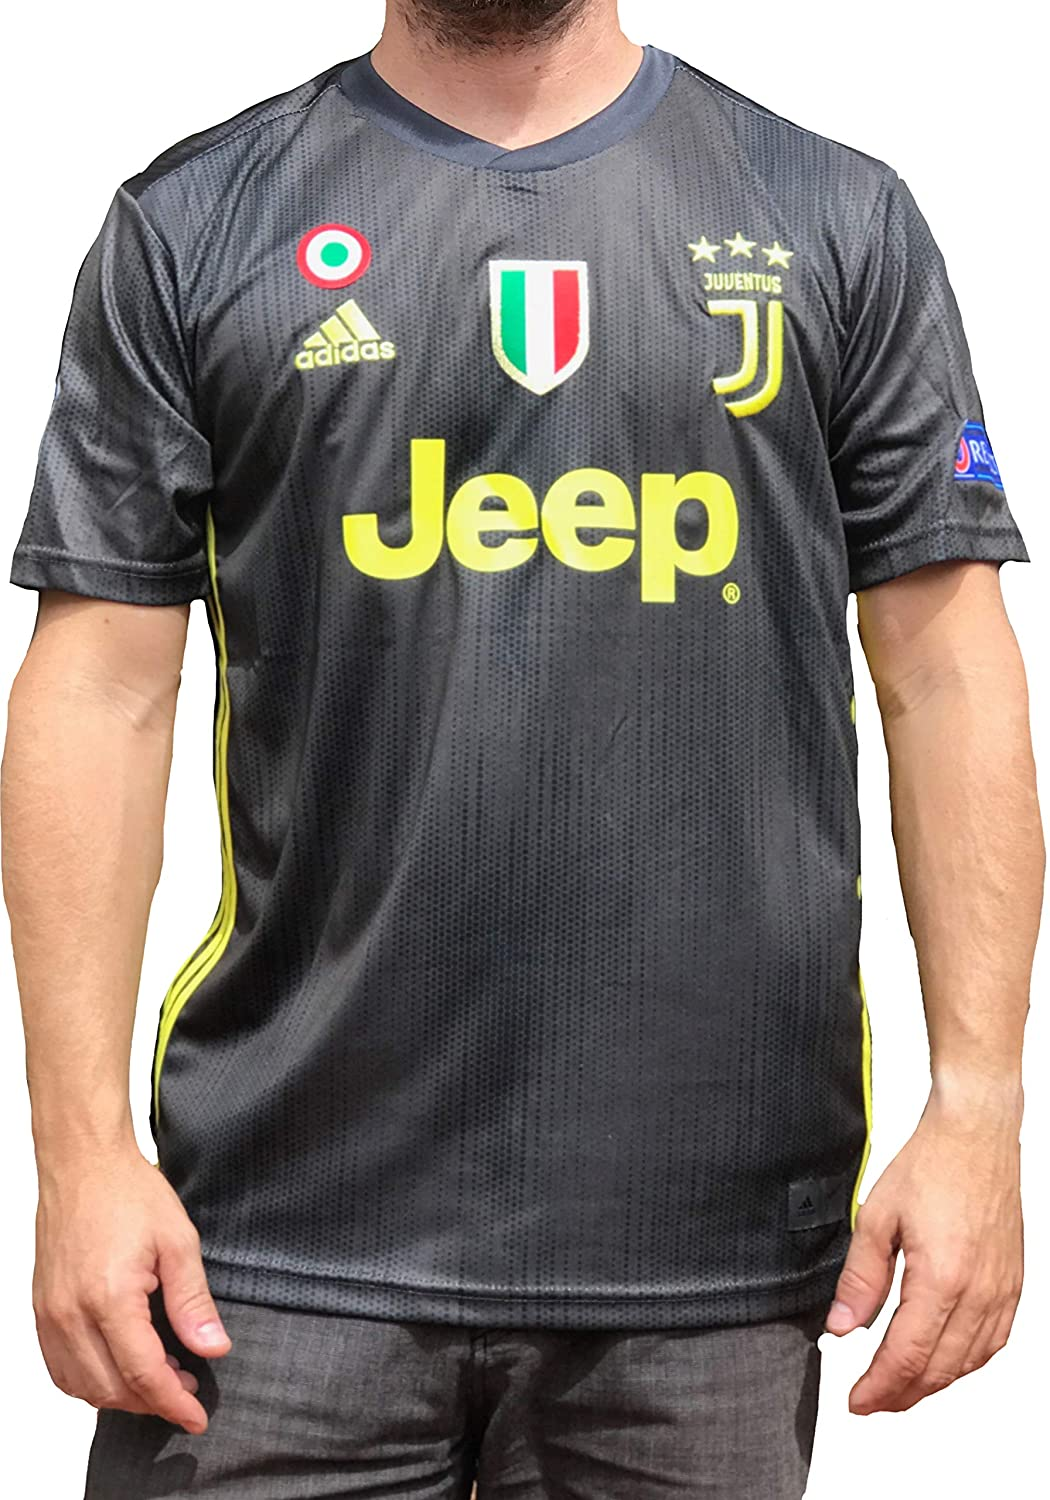 big sale a1abd 8042e Juventus Ronaldo No.#7 Soccer Jersey 2018 2019 Serie A Calcio d'Italia -  New Black and White Home Soccer Jersey 2019